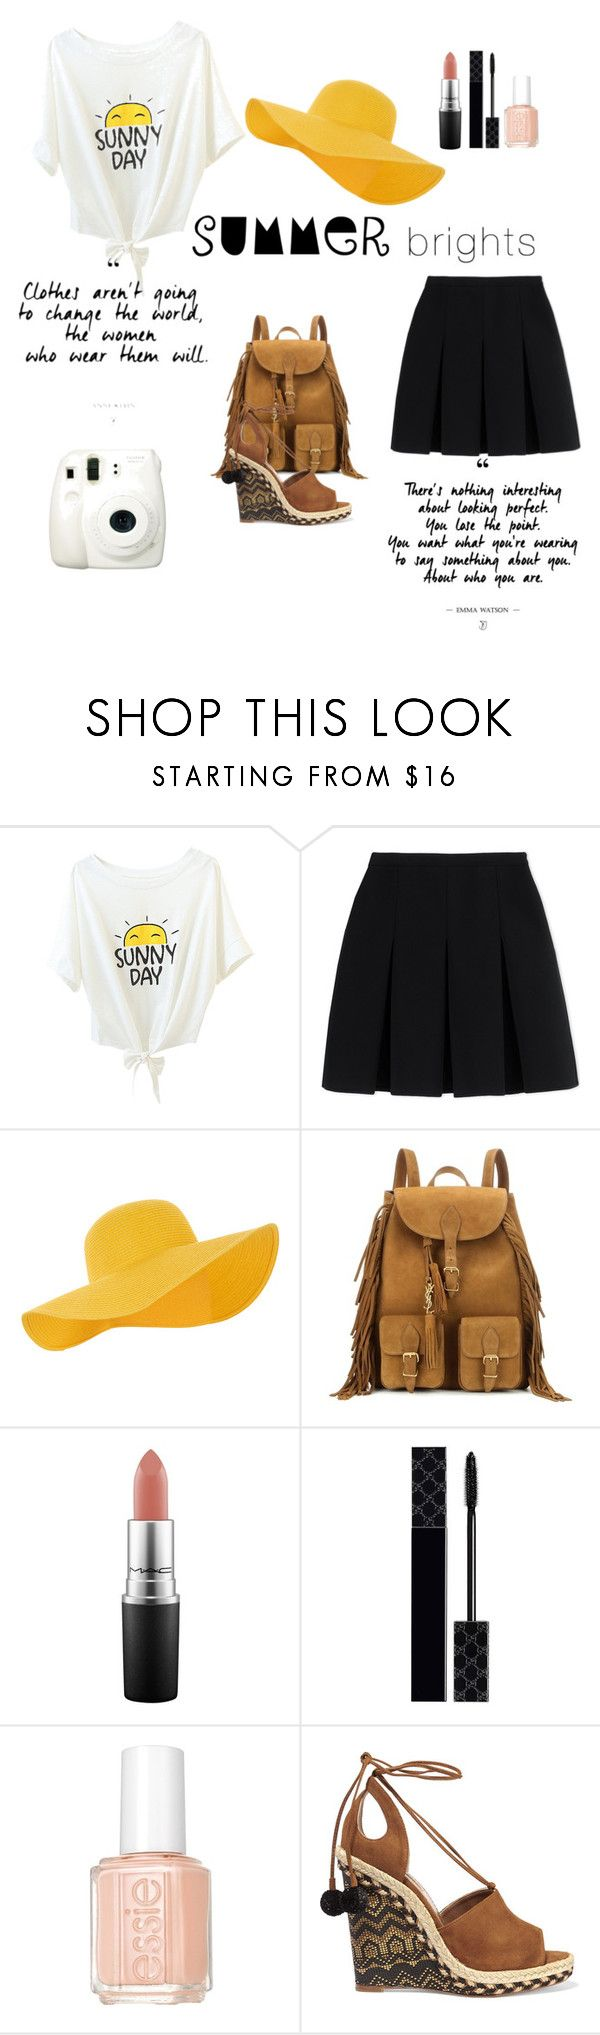 """""""summer bright"""" by zahrohusna on Polyvore featuring Fuji, Alexander Wang, Accessorize, Yves Saint Laurent, MAC Cosmetics, Gucci, Essie, Aquazzura and summerbrights"""